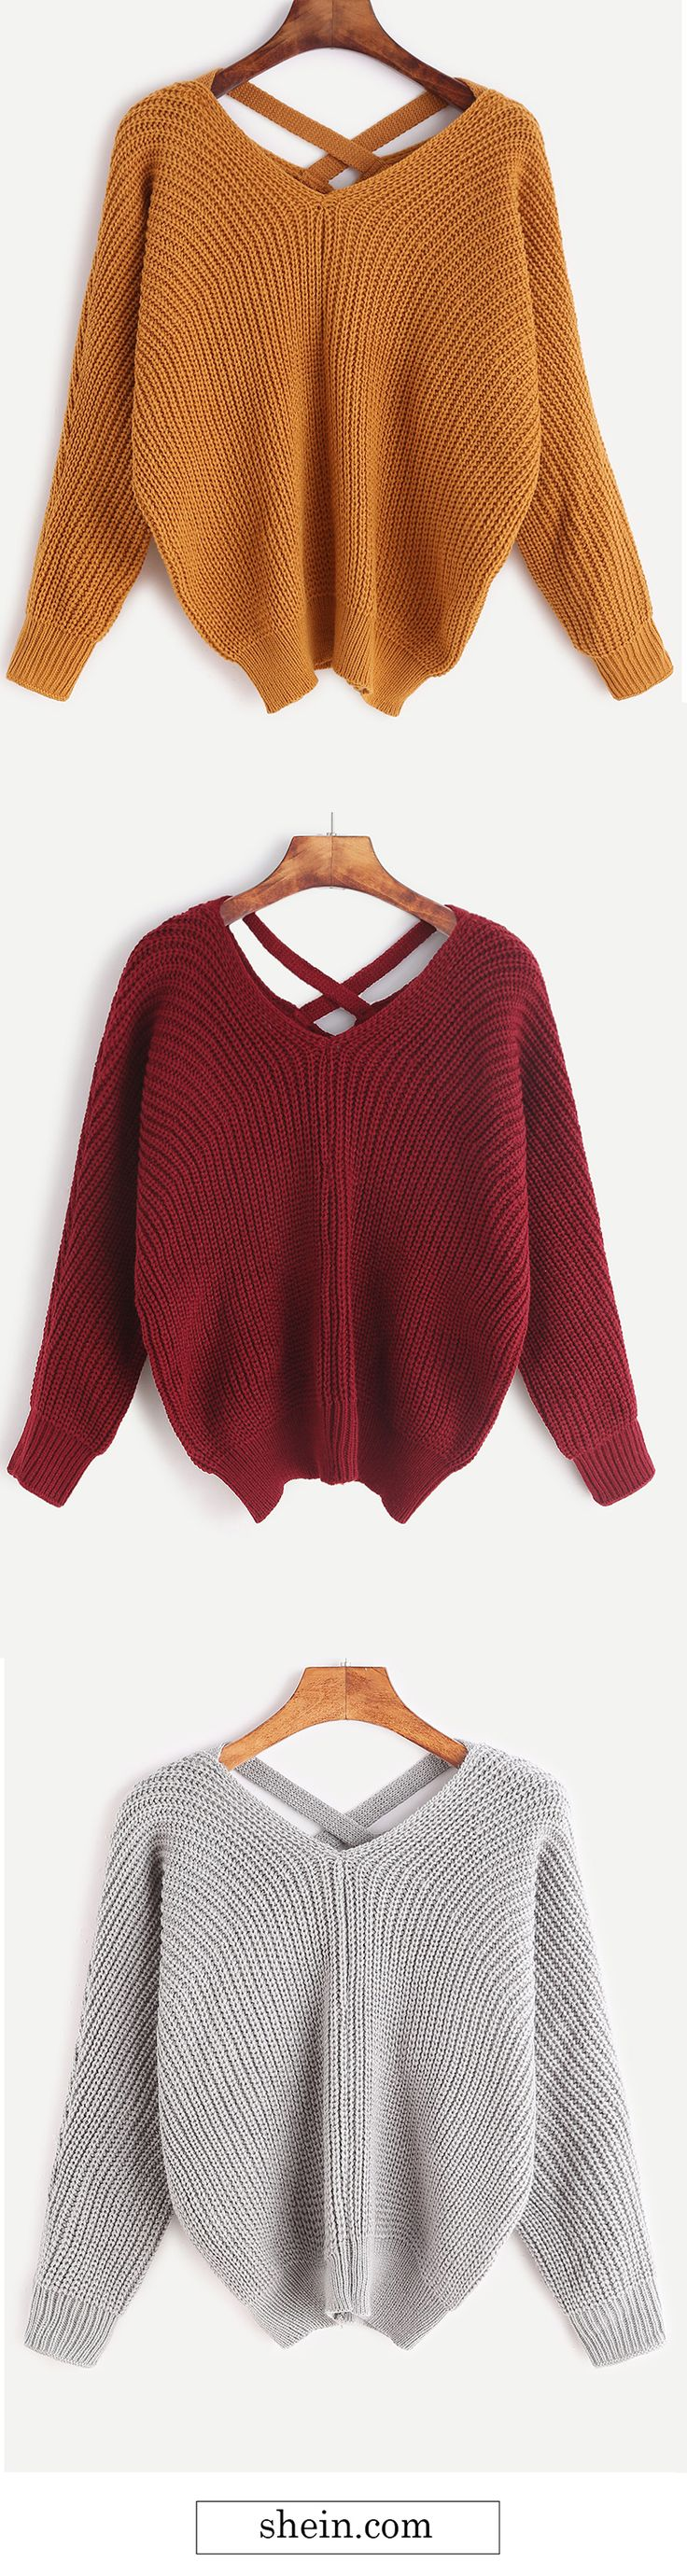 V neck criss cross back sweater collect.